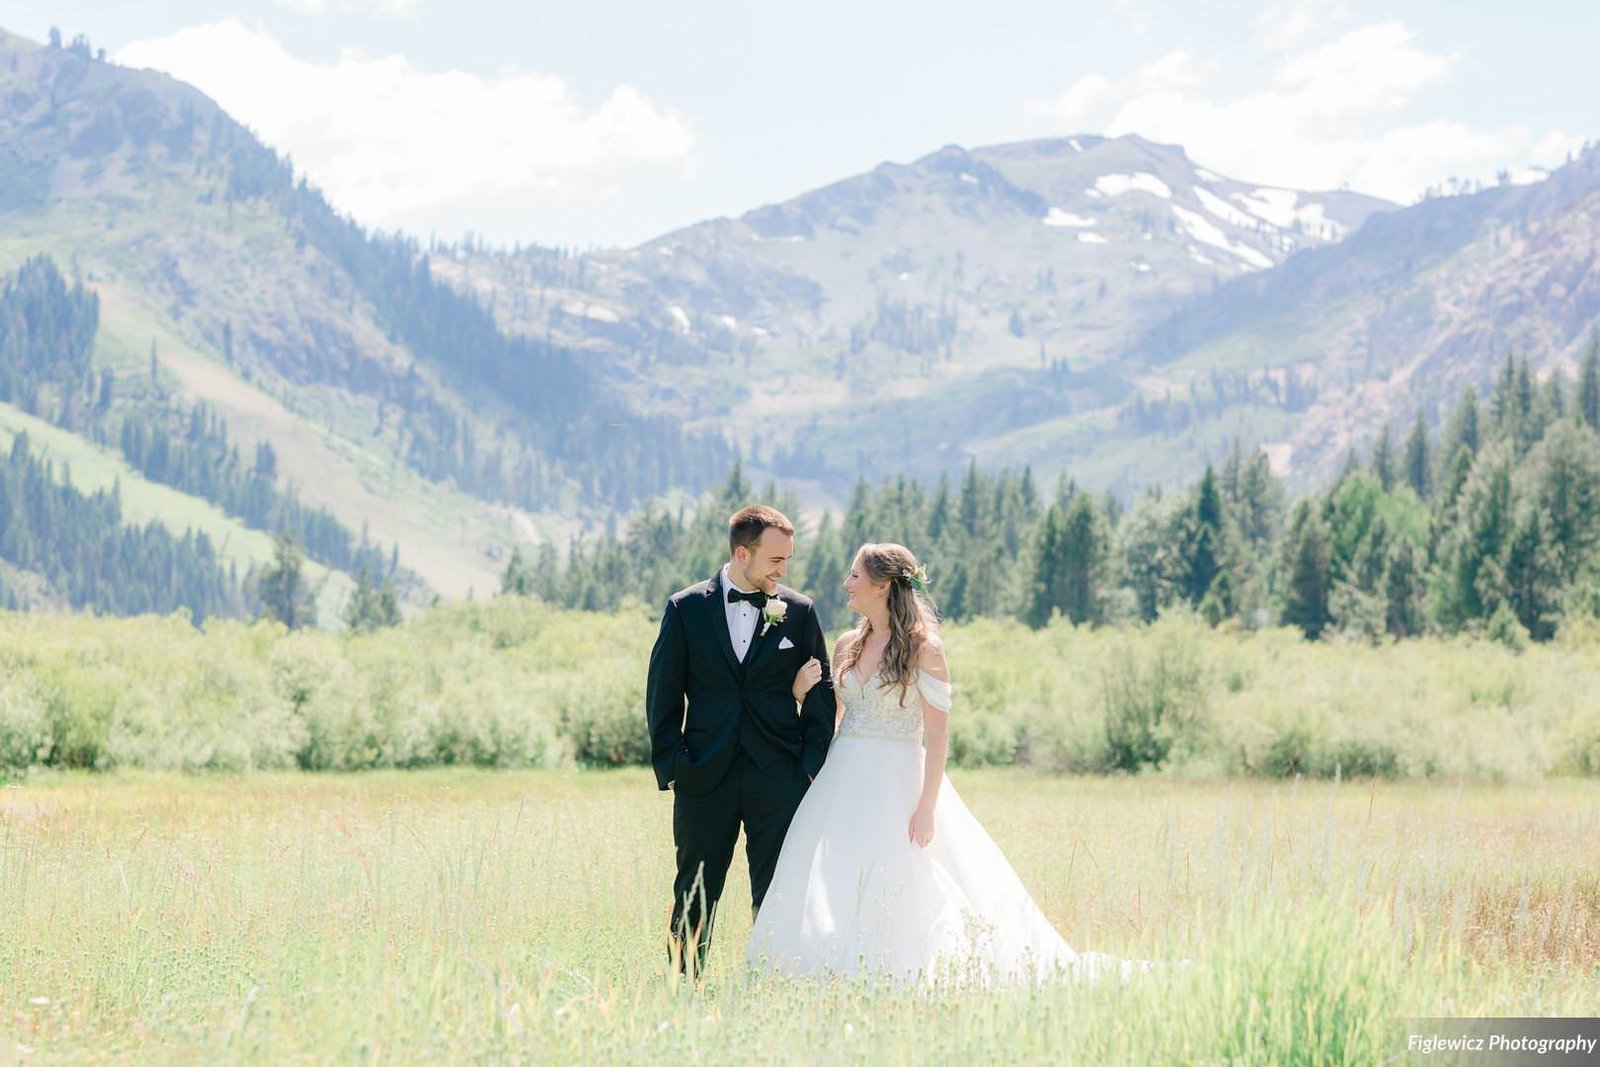 Garden_Tinsley_FiglewiczPhotography_LakeTahoeWeddingSquawValleyCreekTaylorBrendan00021_big